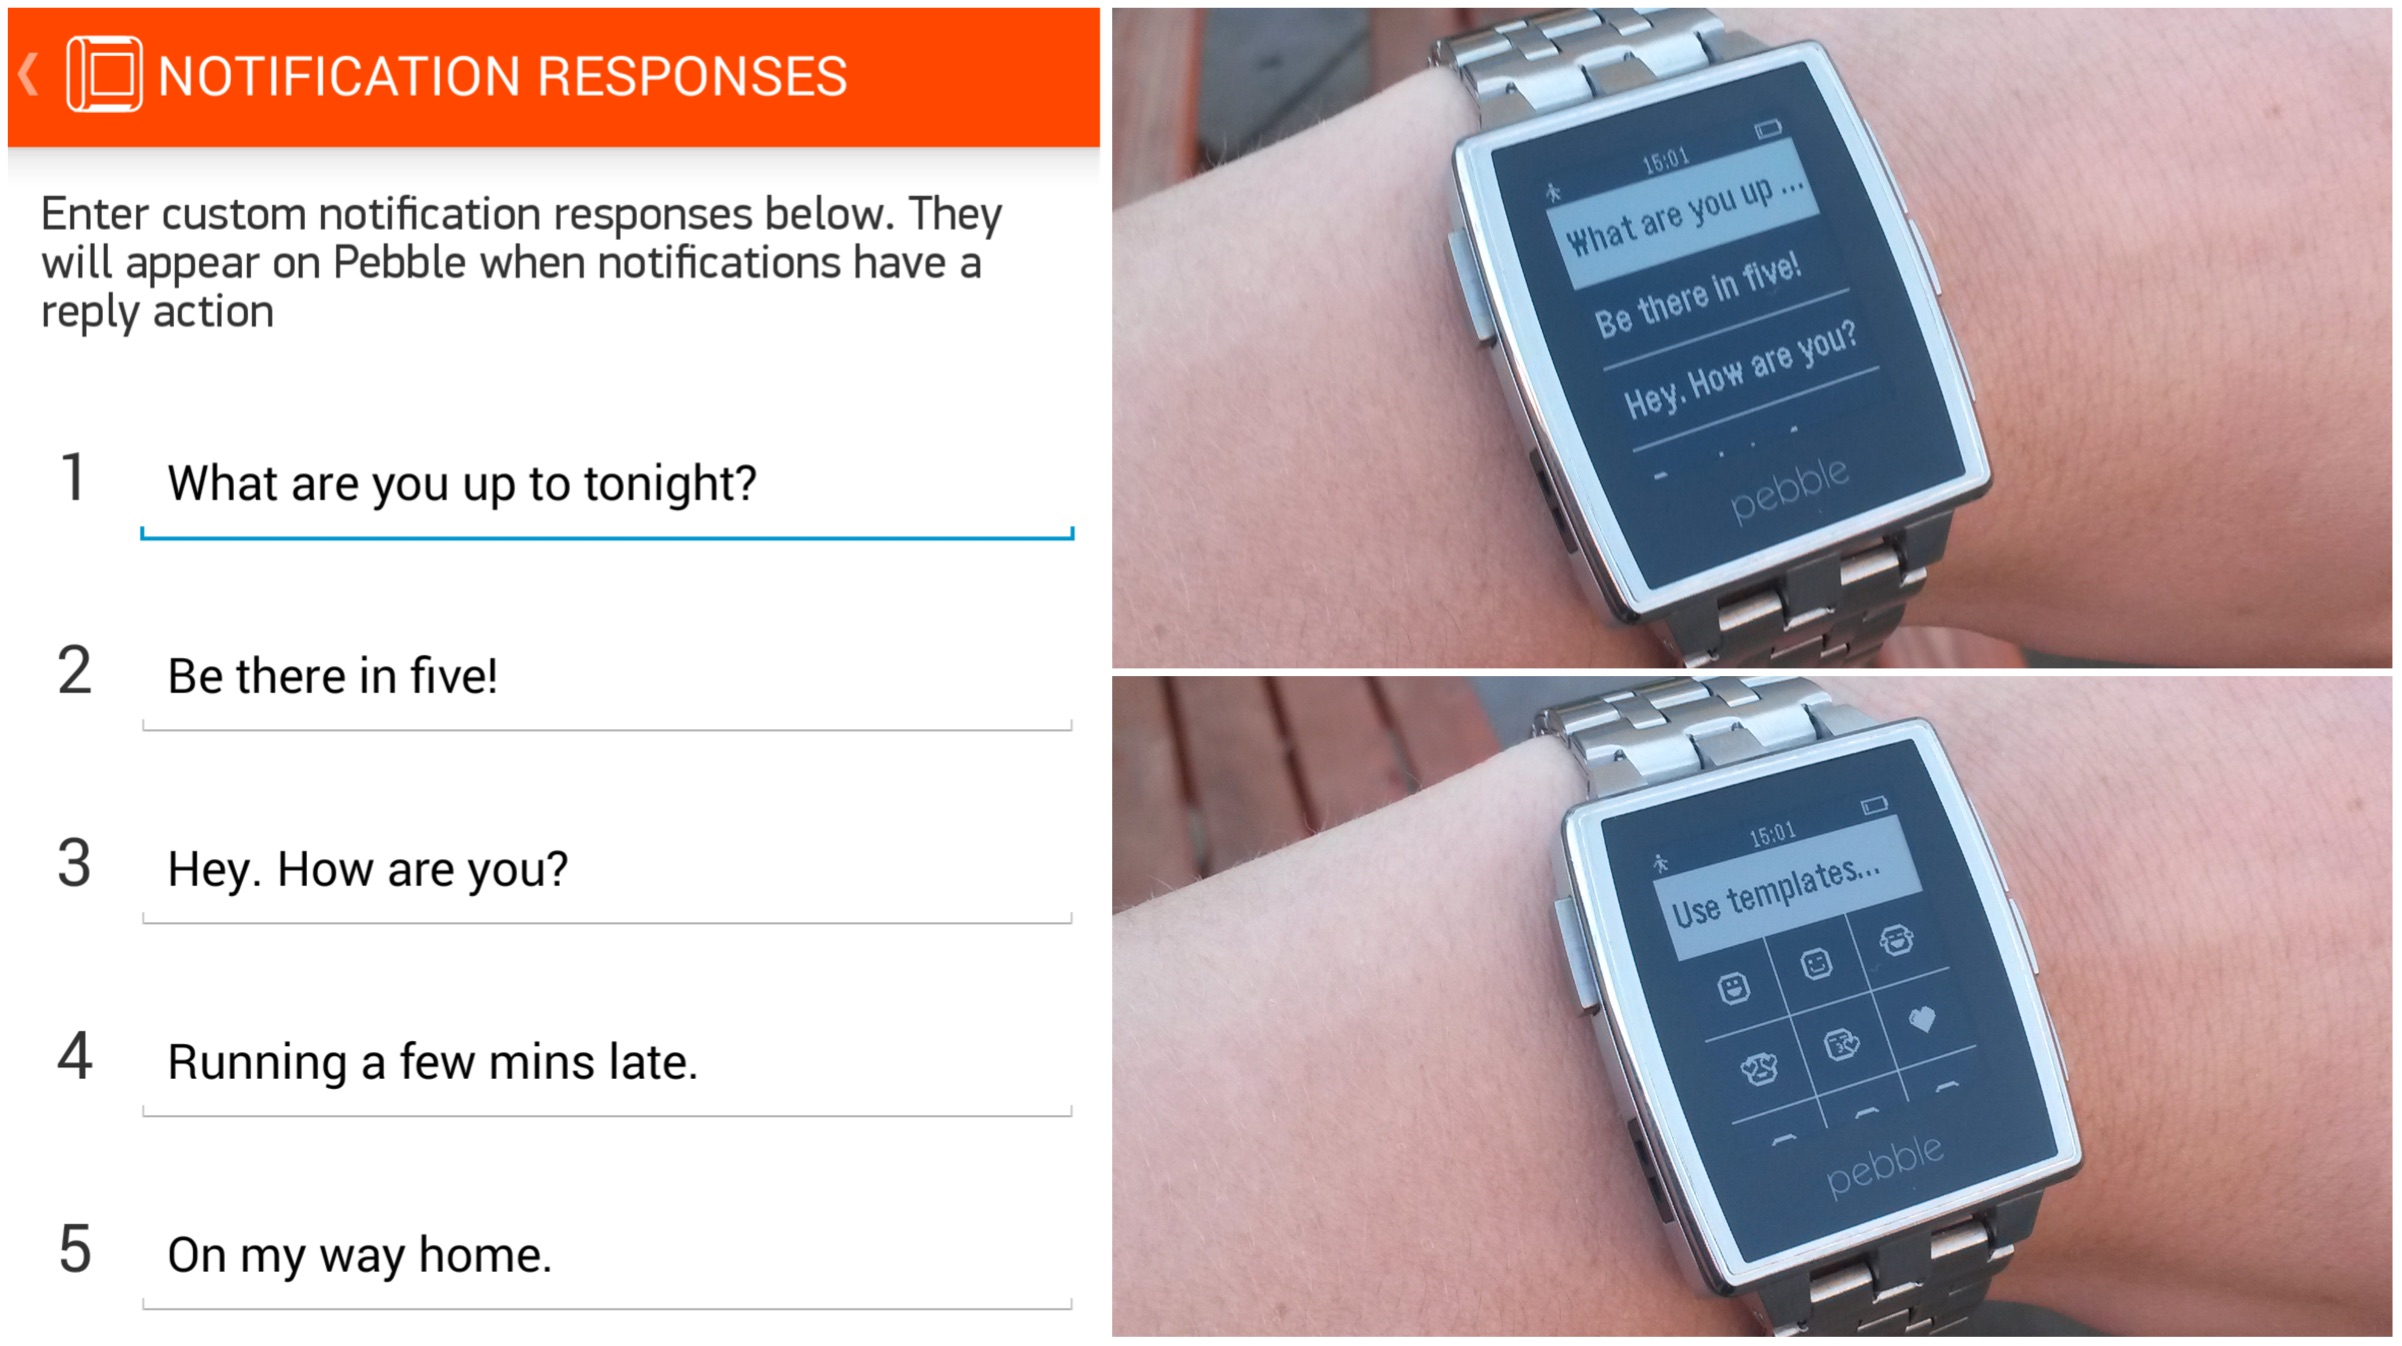 Demonstracao do Pebble Steel